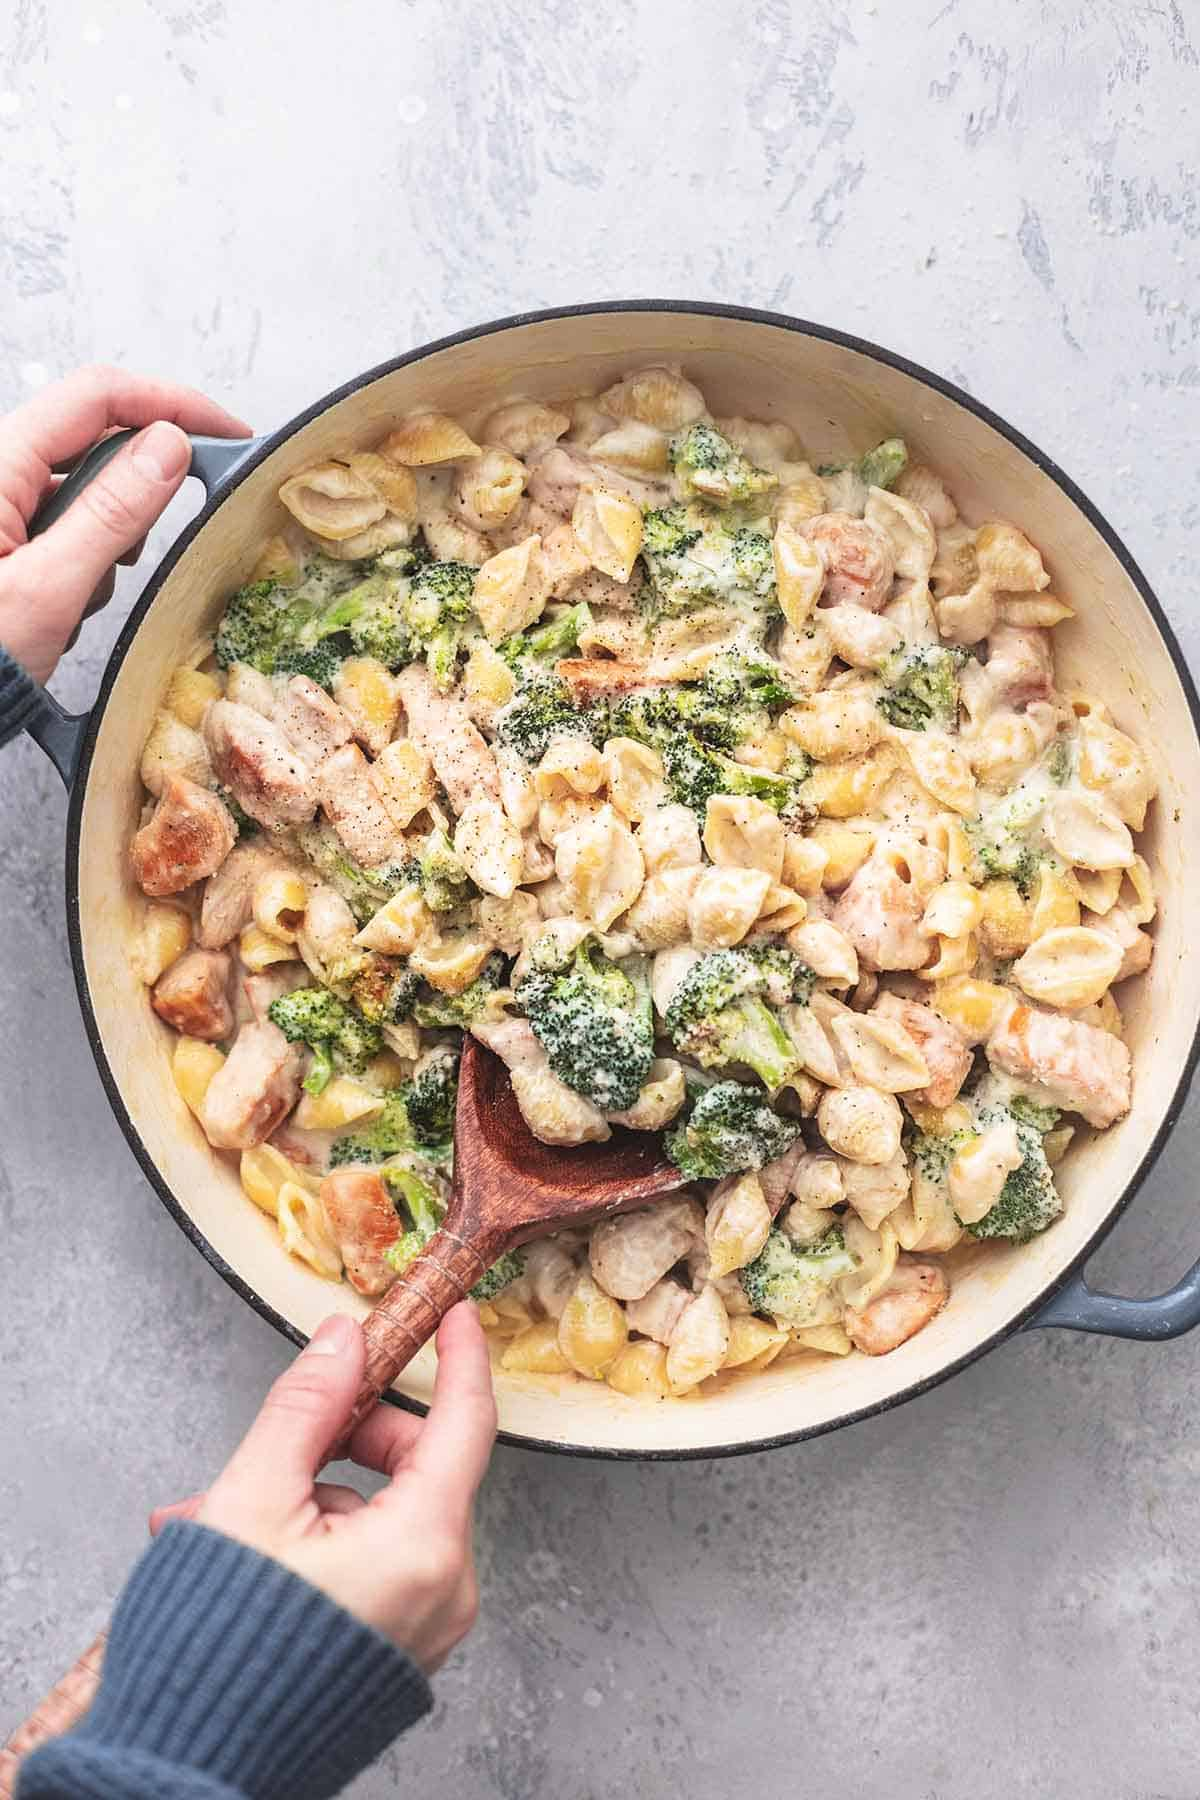 hands dishing spoonful of chicken and broccoli pasta